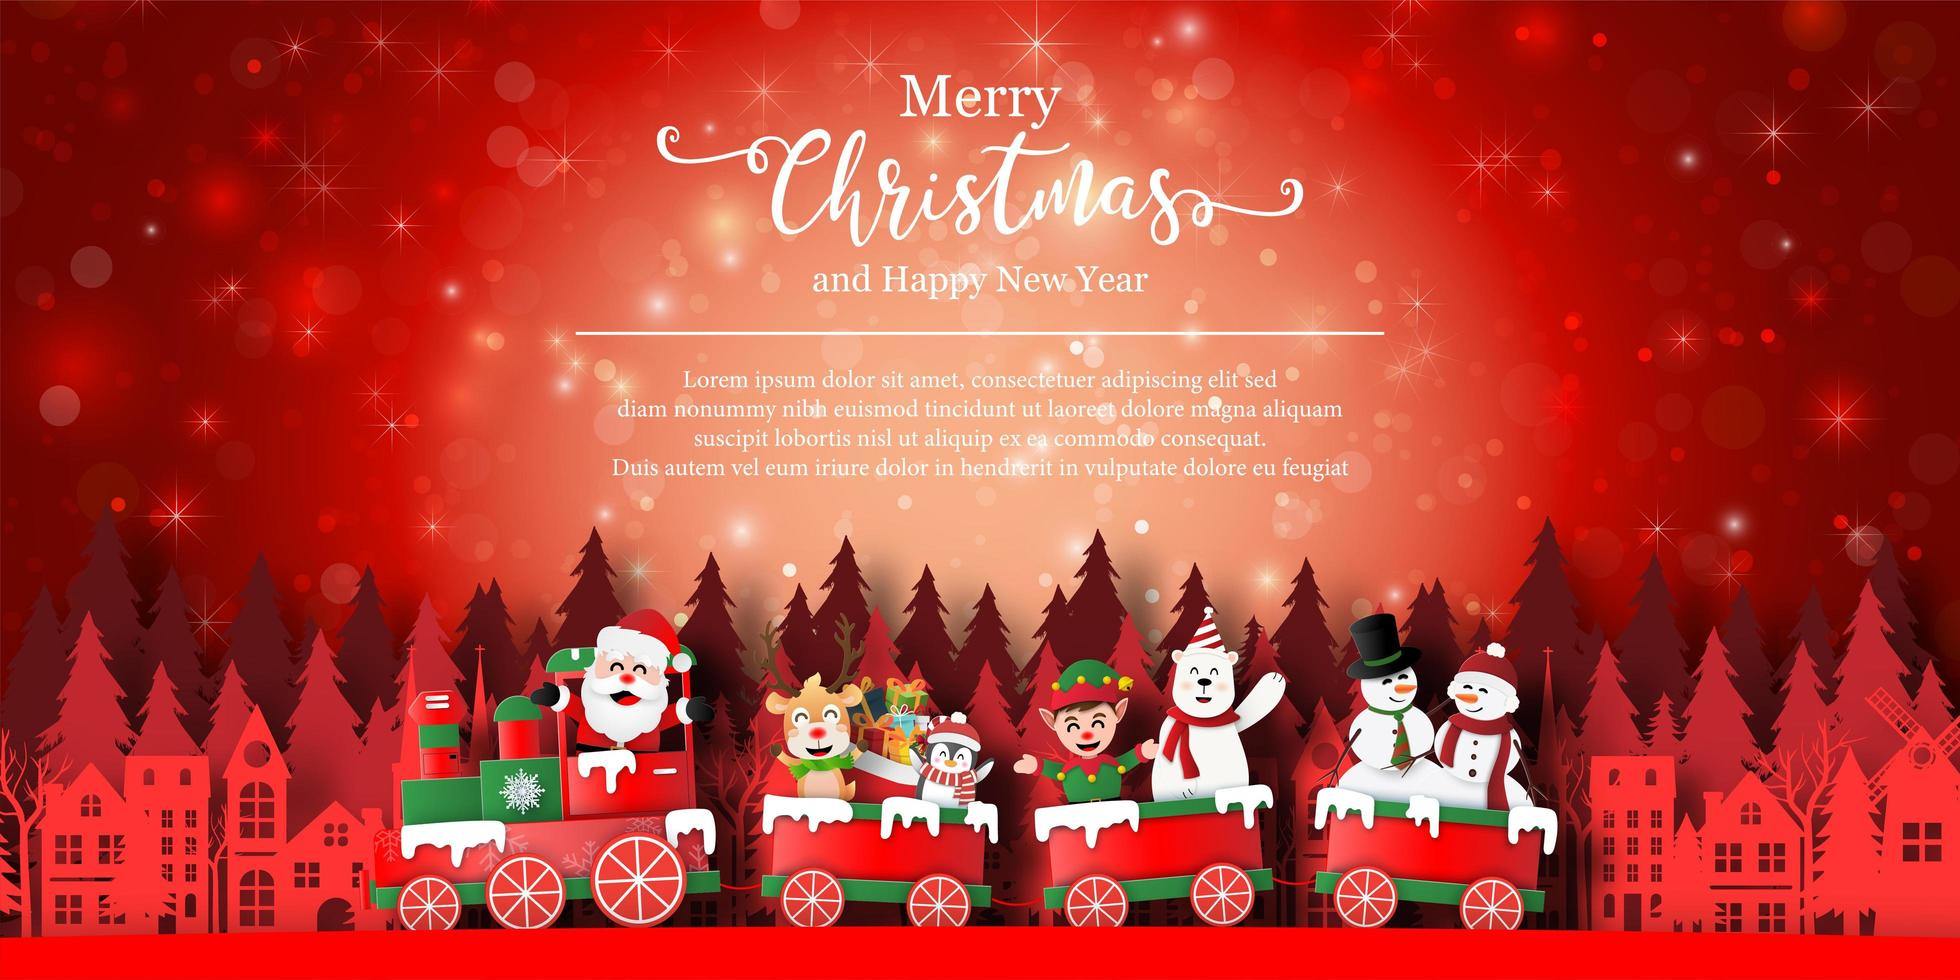 Merry Christmas banner with holiday characters on train vector